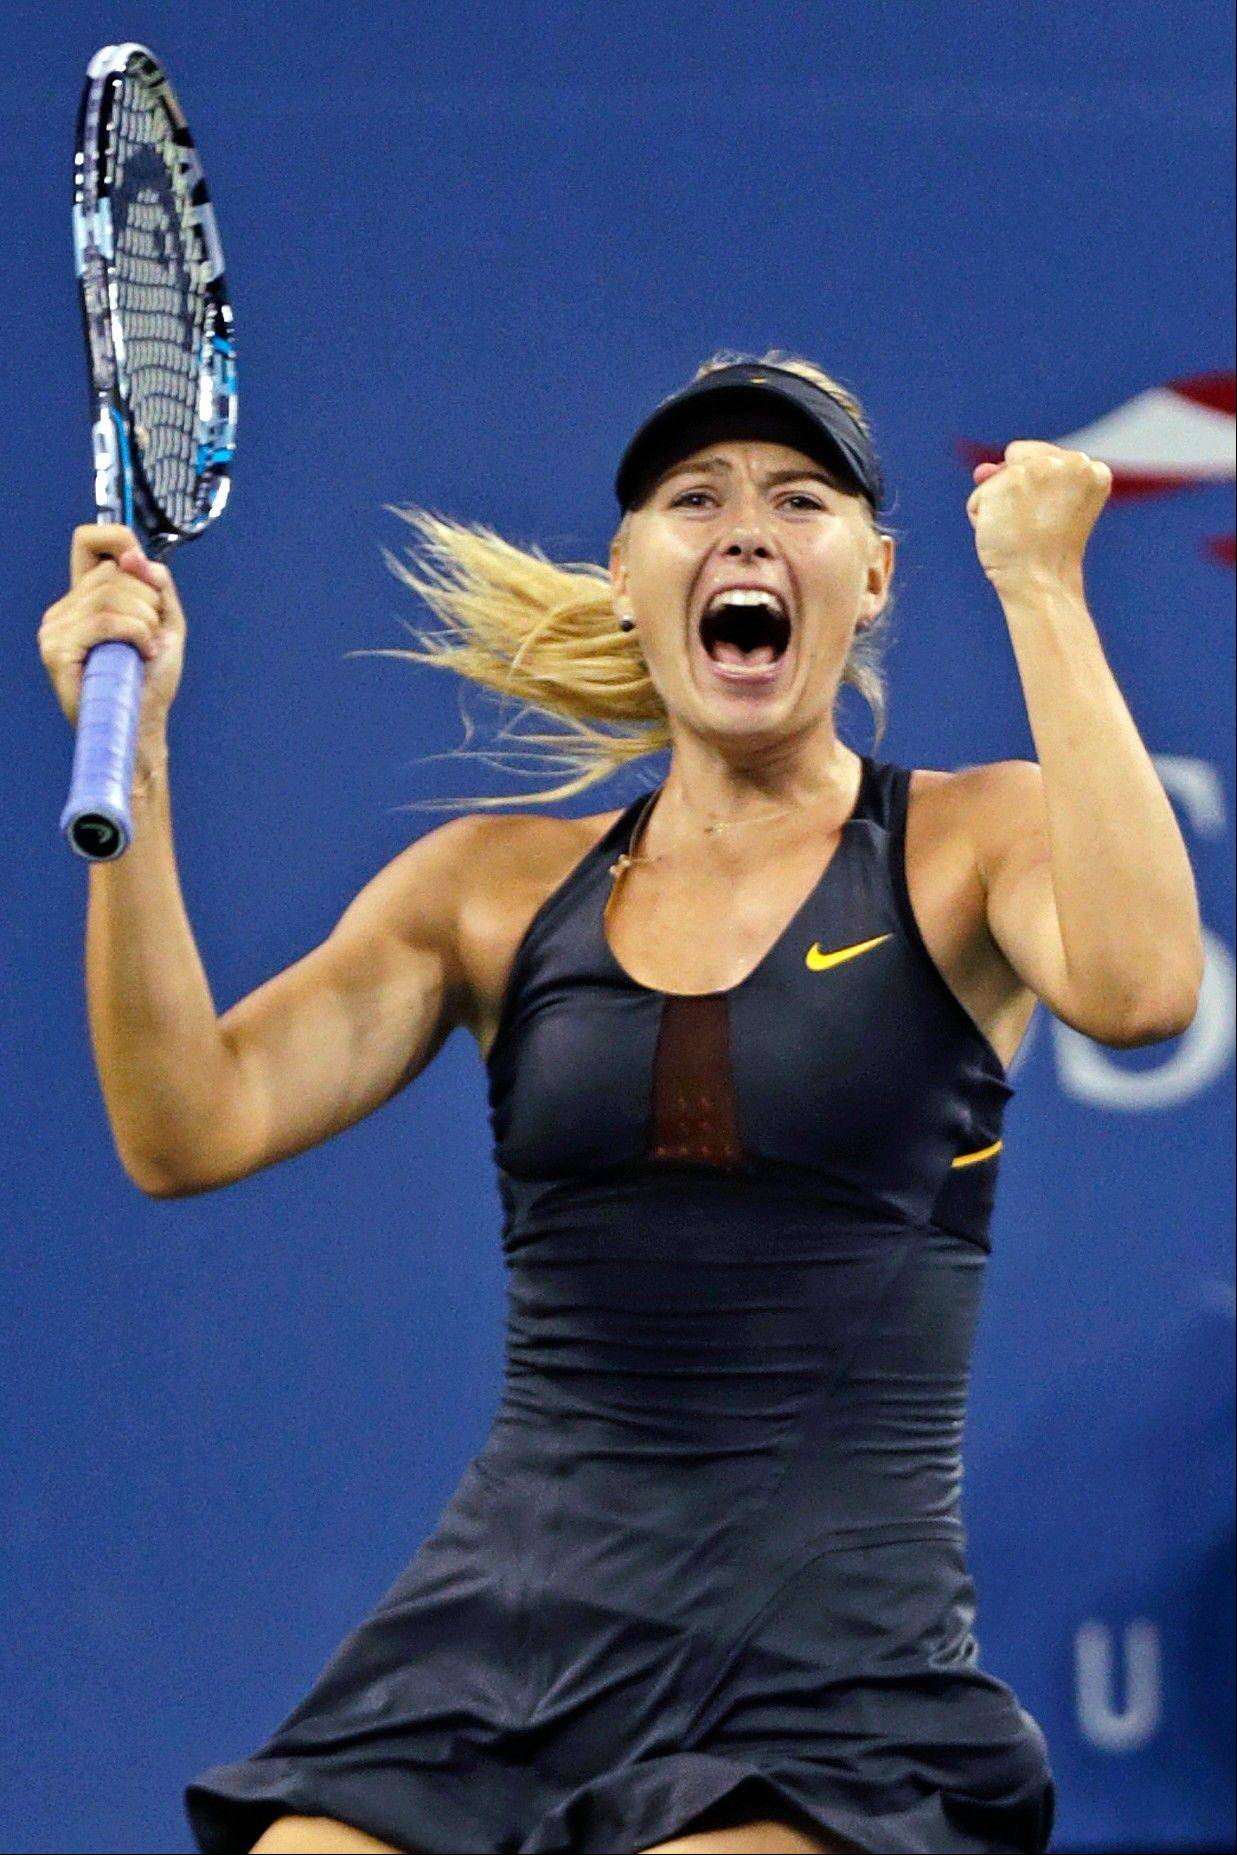 Maria Sharapova, of Russia, reacts after defeating Nadia Petrova, of Russia, 6-1, 4-6, 6-4 in the fourth round of play at the U.S. Open tennis tournament, Sunday, Sept. 2, 2012, in New York.